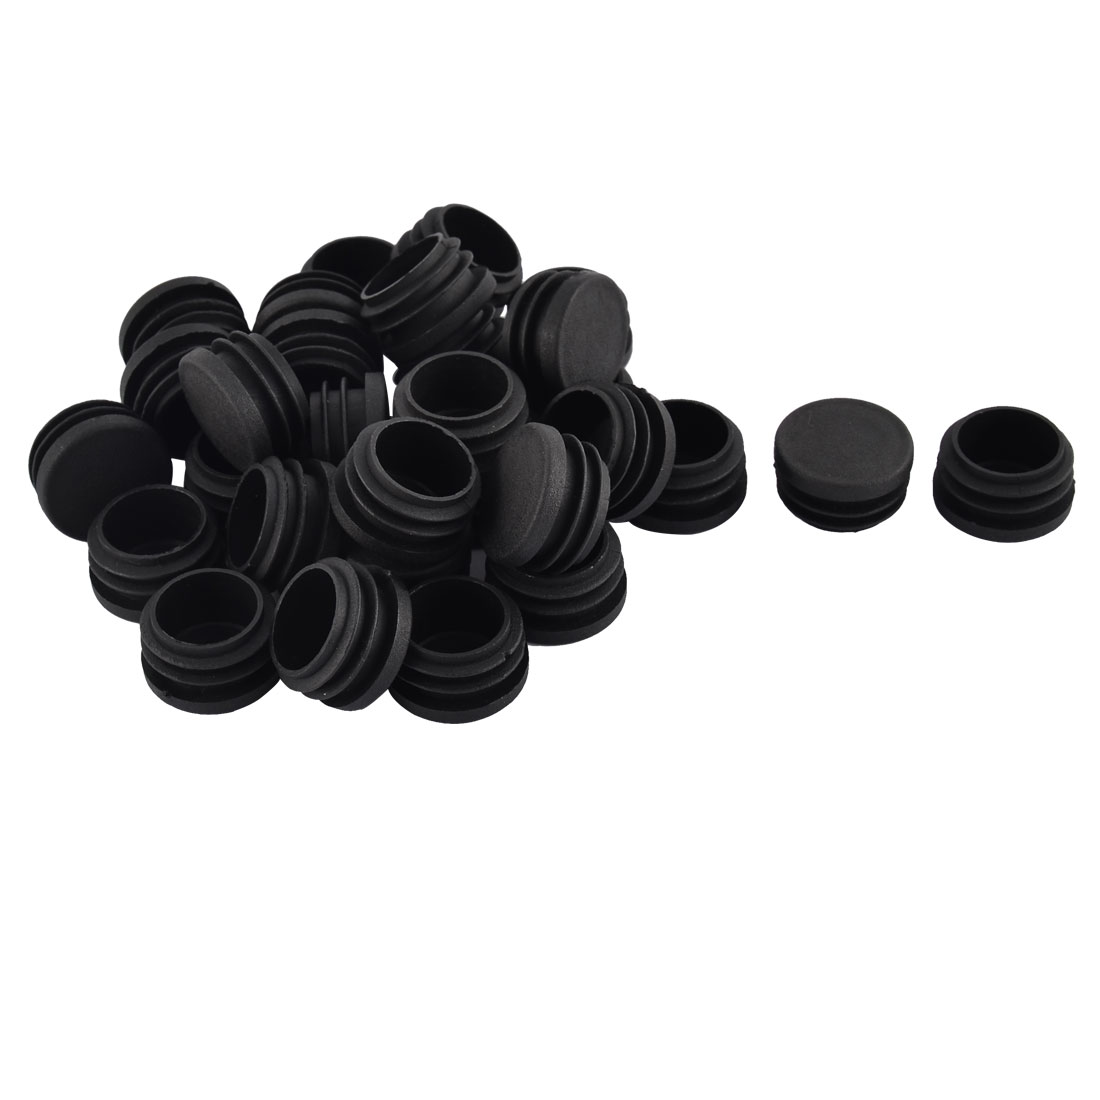 Table Chair Legs Plastic Round Tube Insert Cover Protector Black 30mm Dia 30pcs